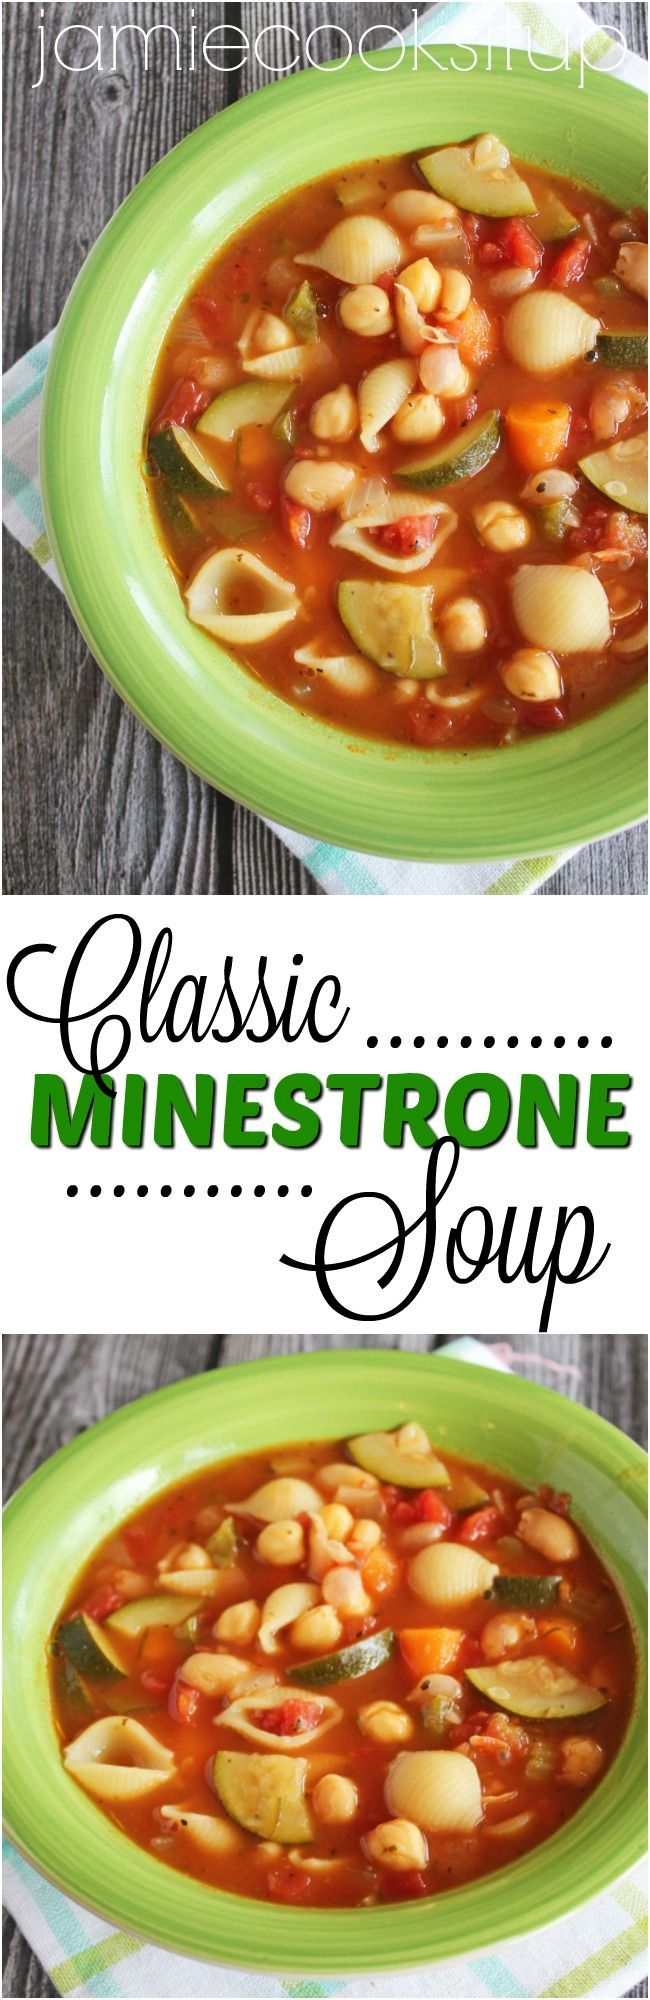 classic-minestrone-soup-from-jamie-cooks-it-up